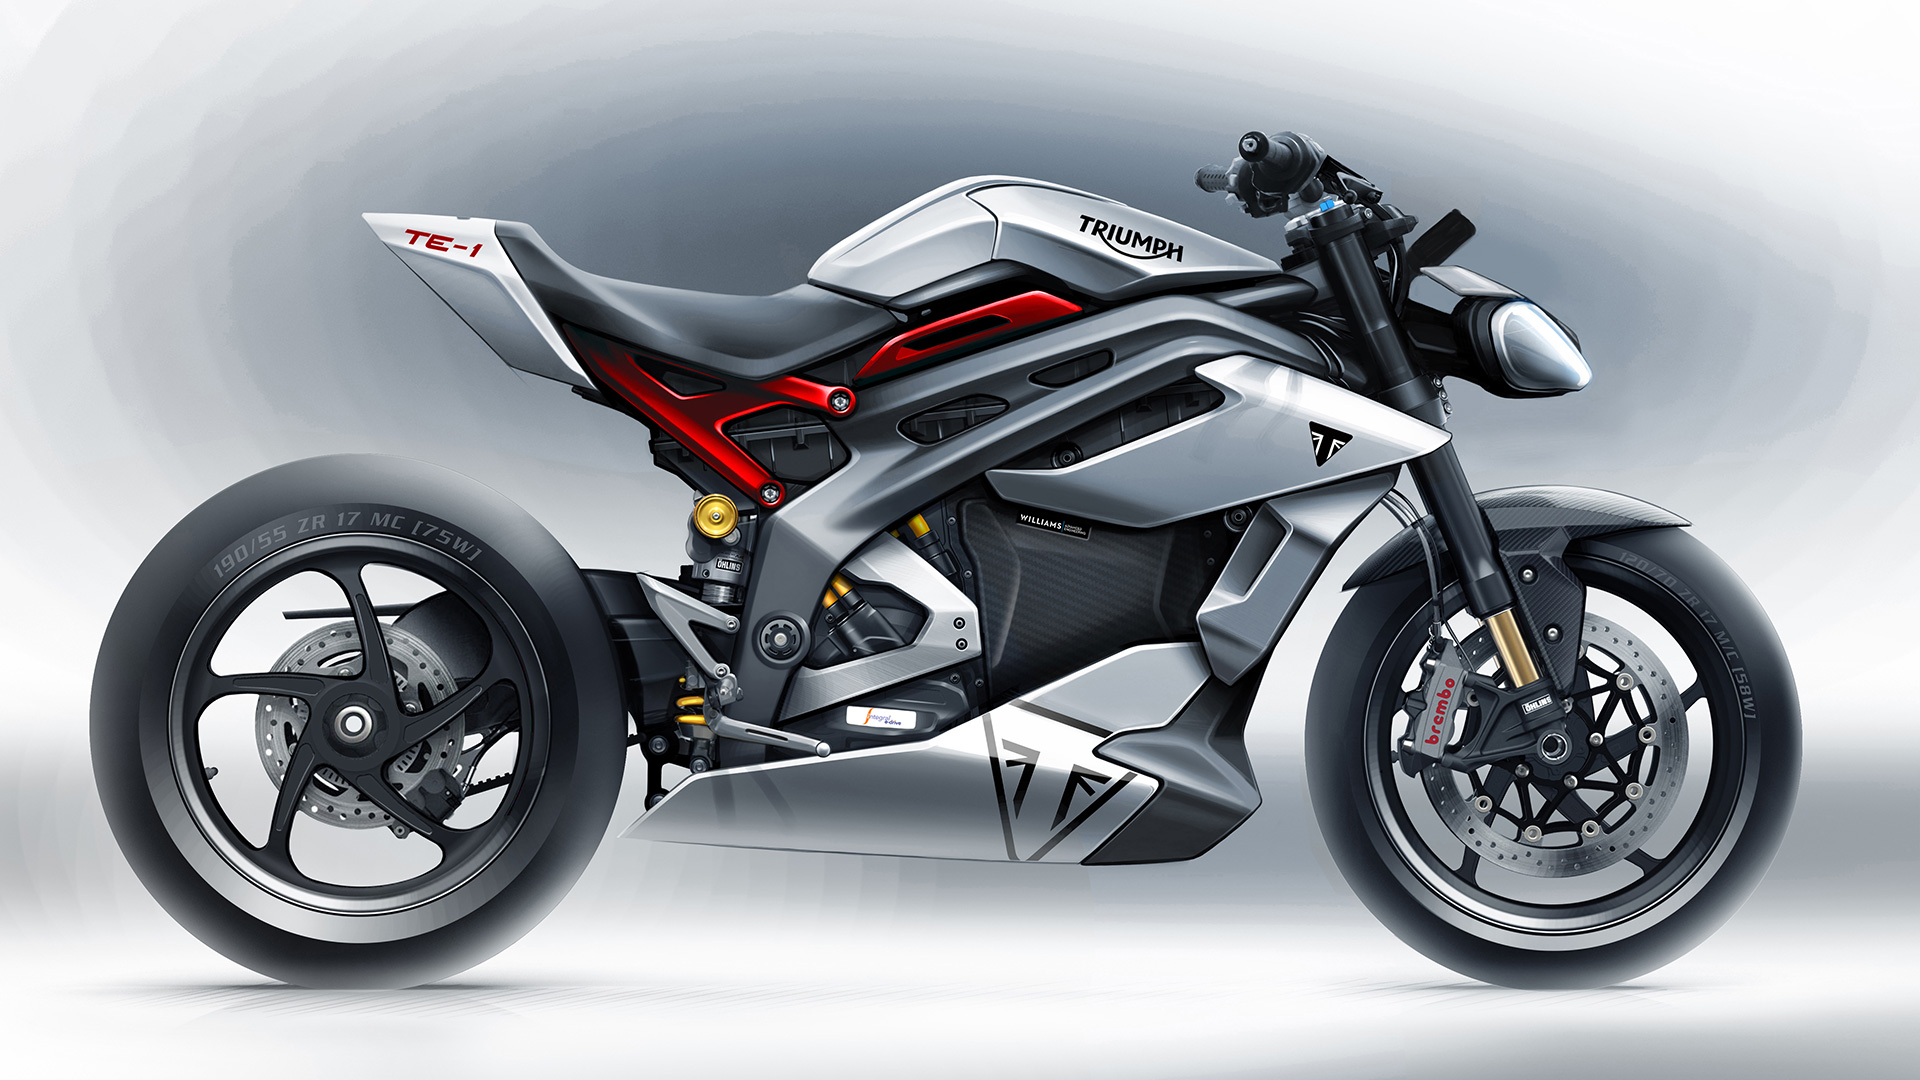 Project Triumph TE1 - Prototype electric motorcycle sketches